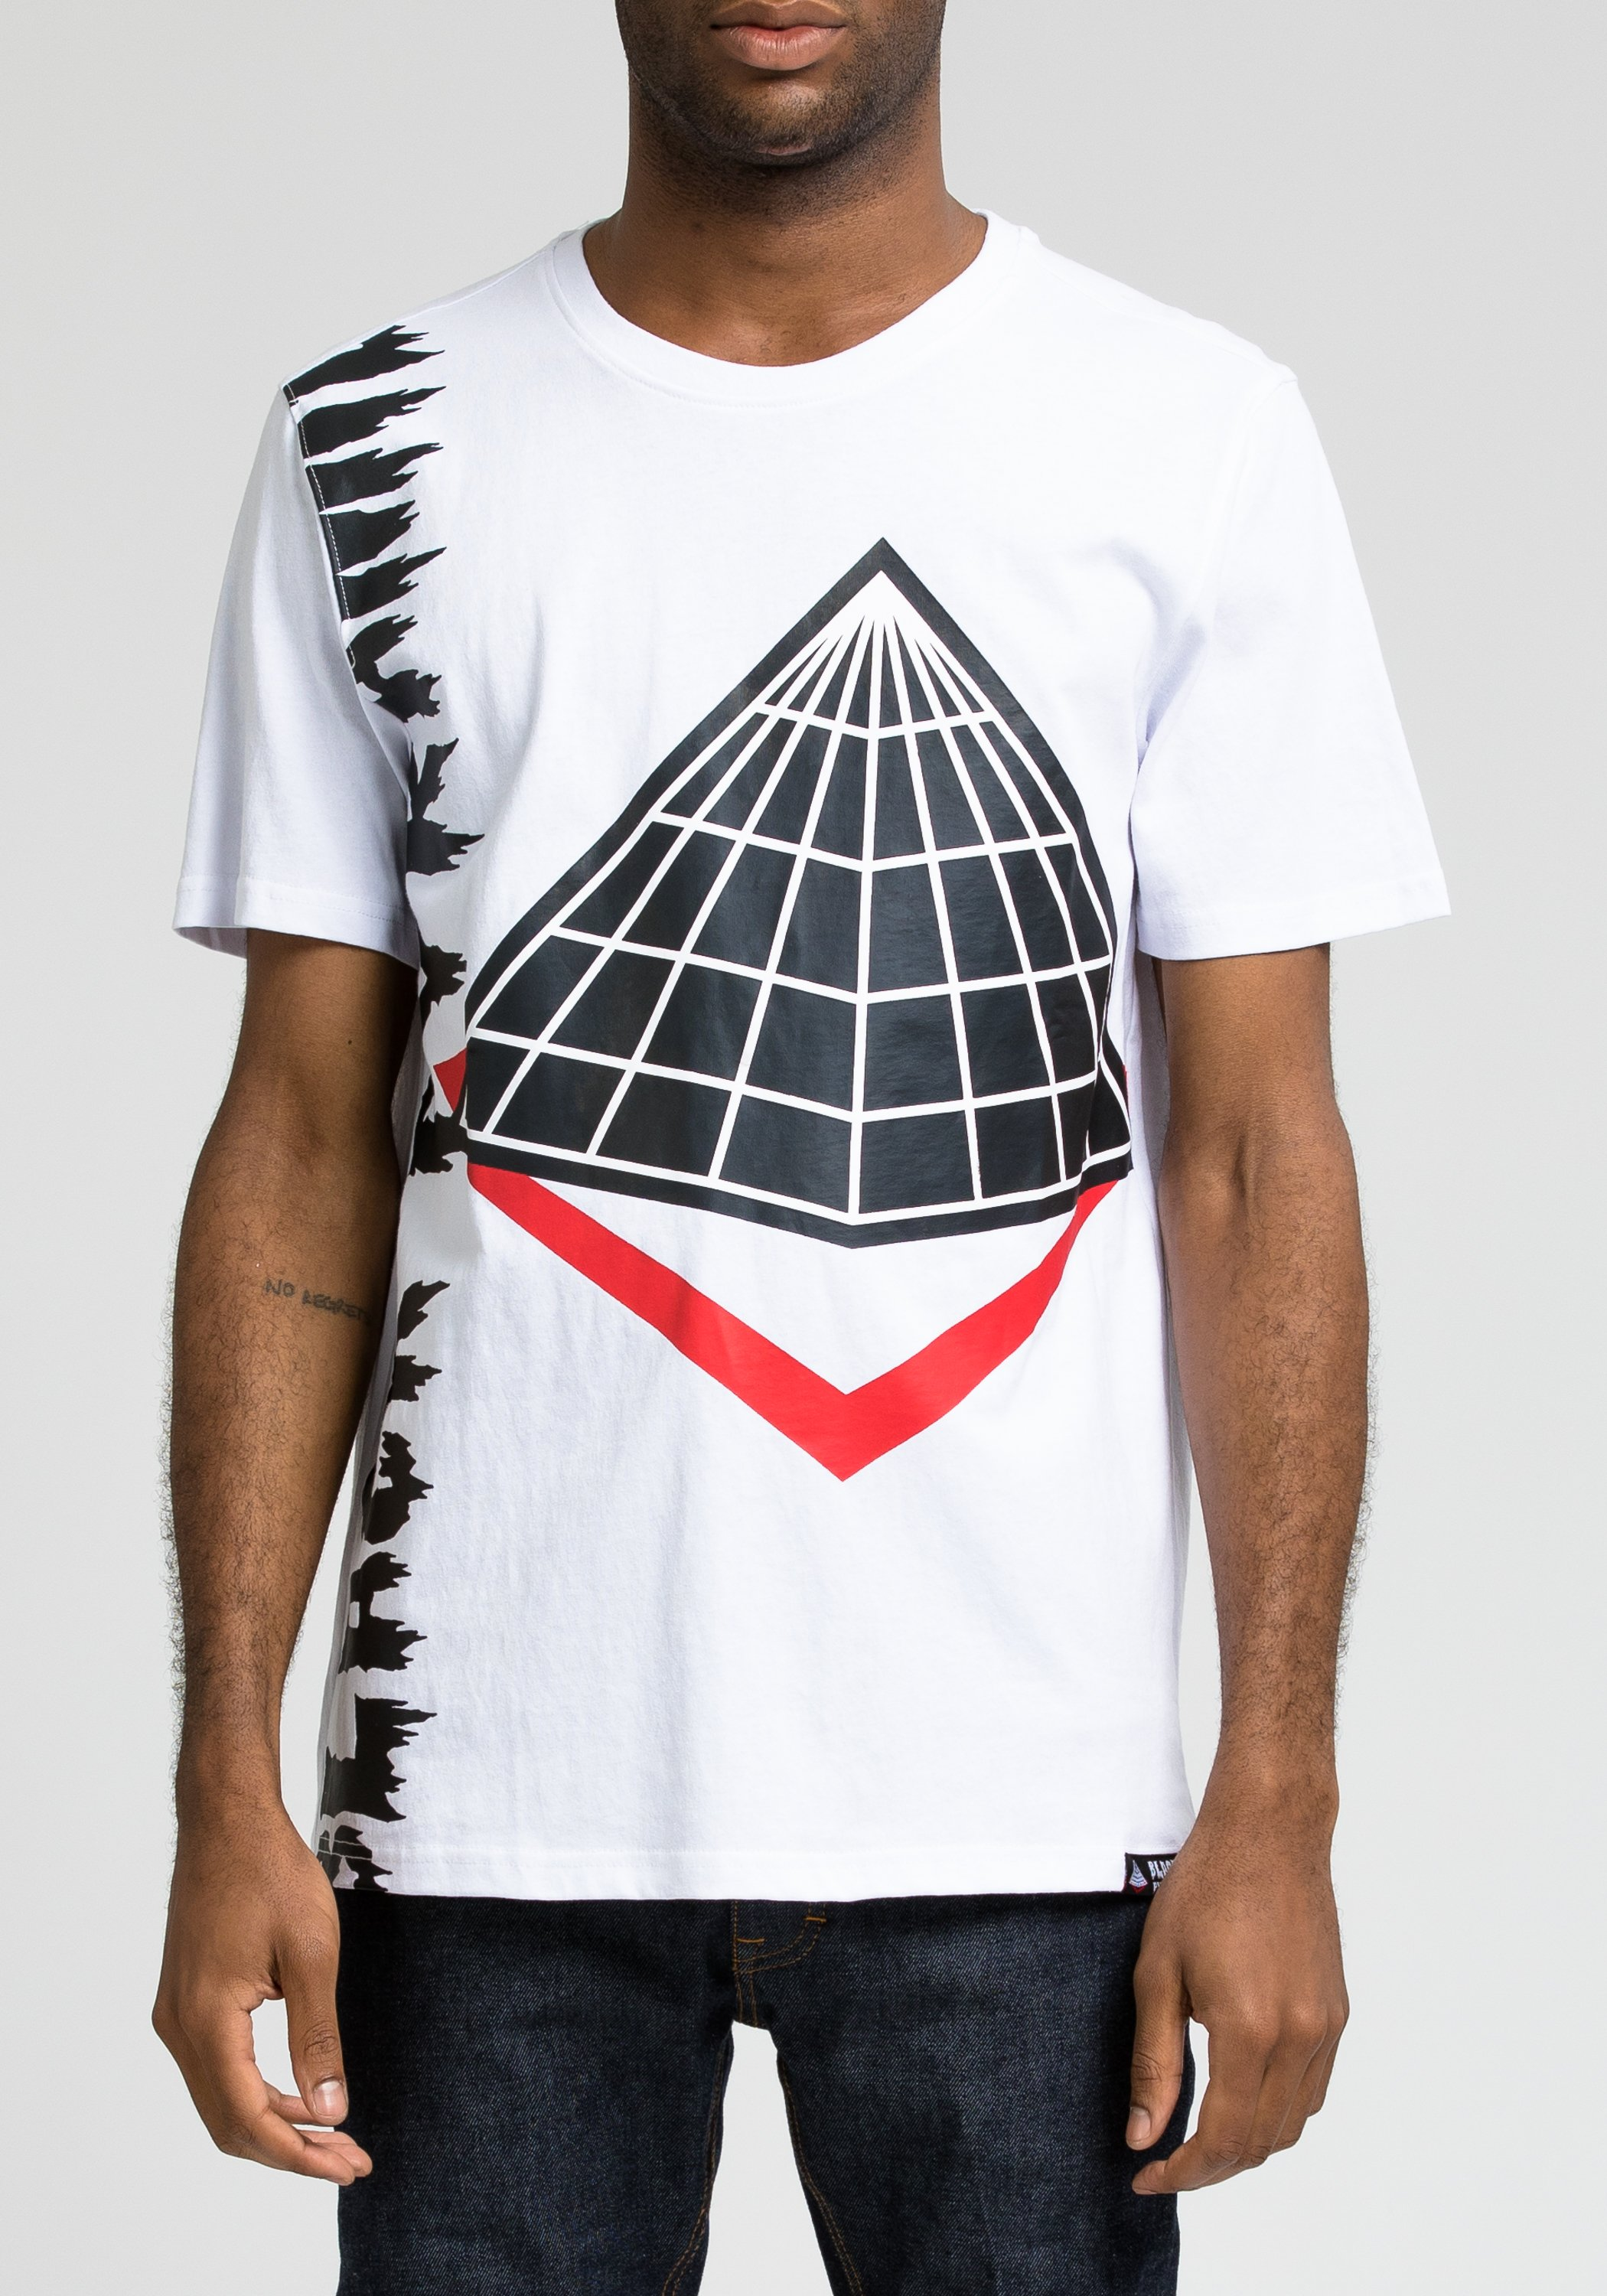 Black Pyramid Scuba Mission Tee 2 0 Turning Point A Hot Spot For Men S Fashion Amp Urban Style